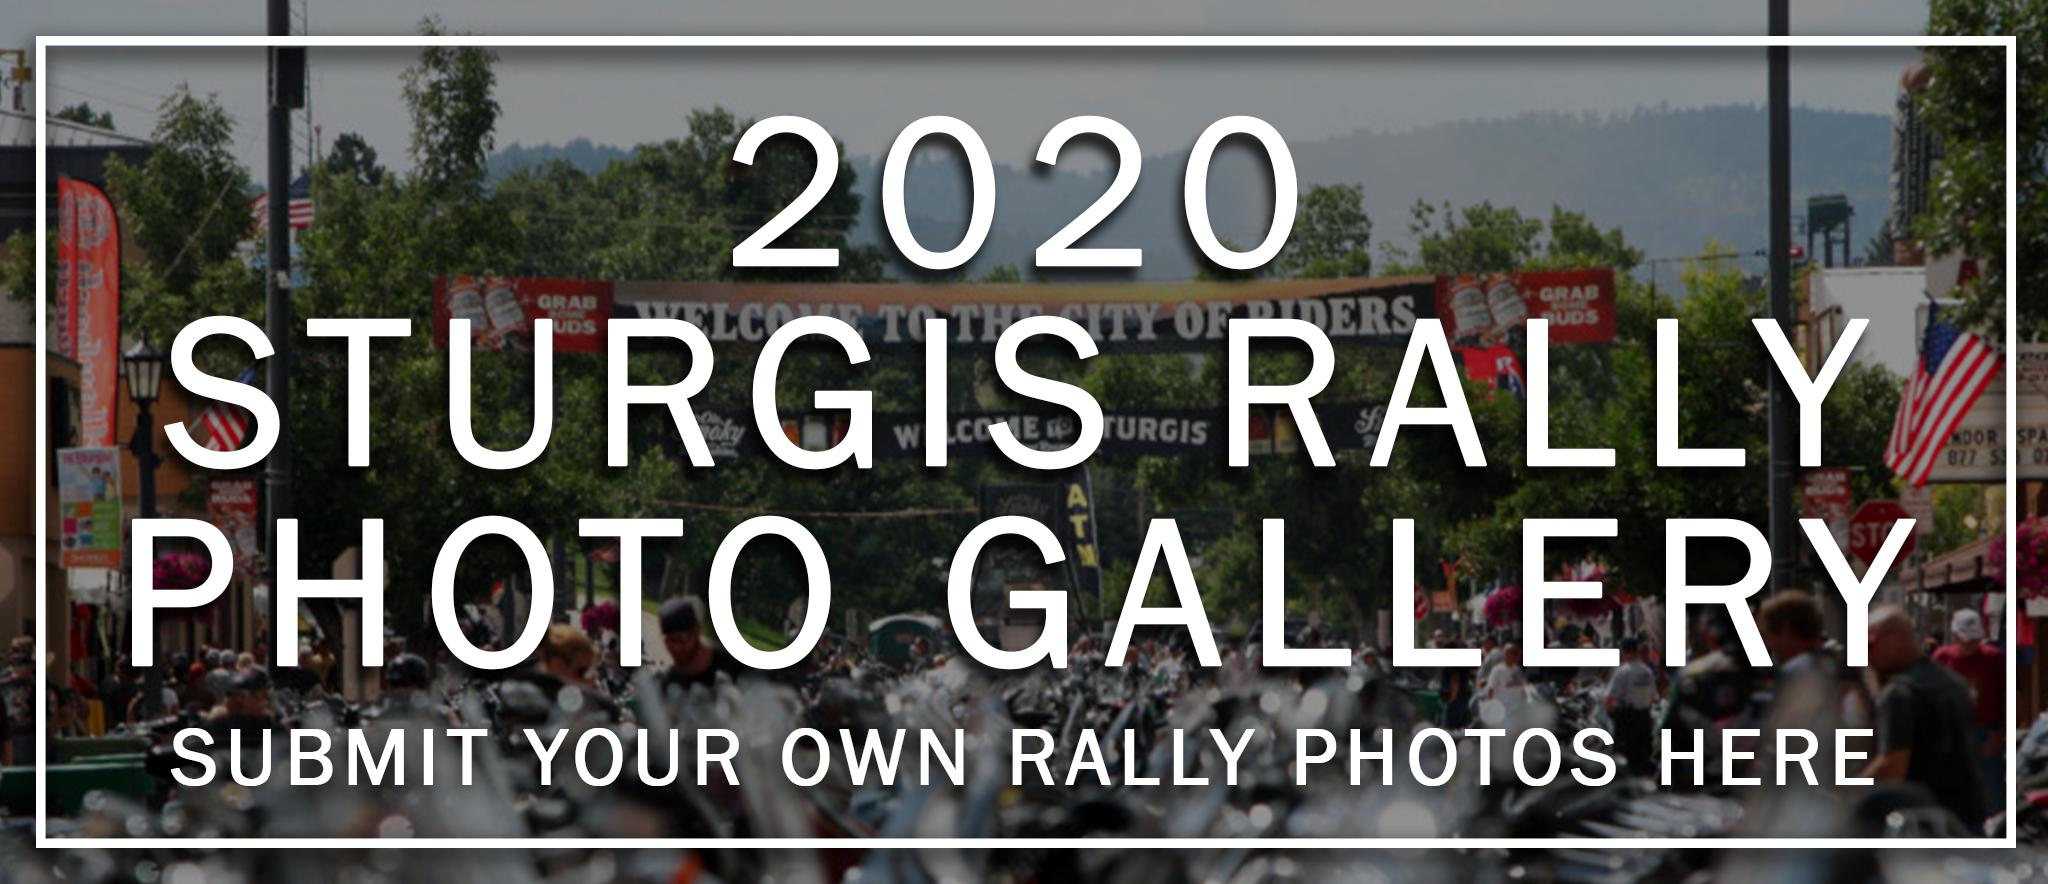 Sturgis 2020 Photo Gallery And Cta